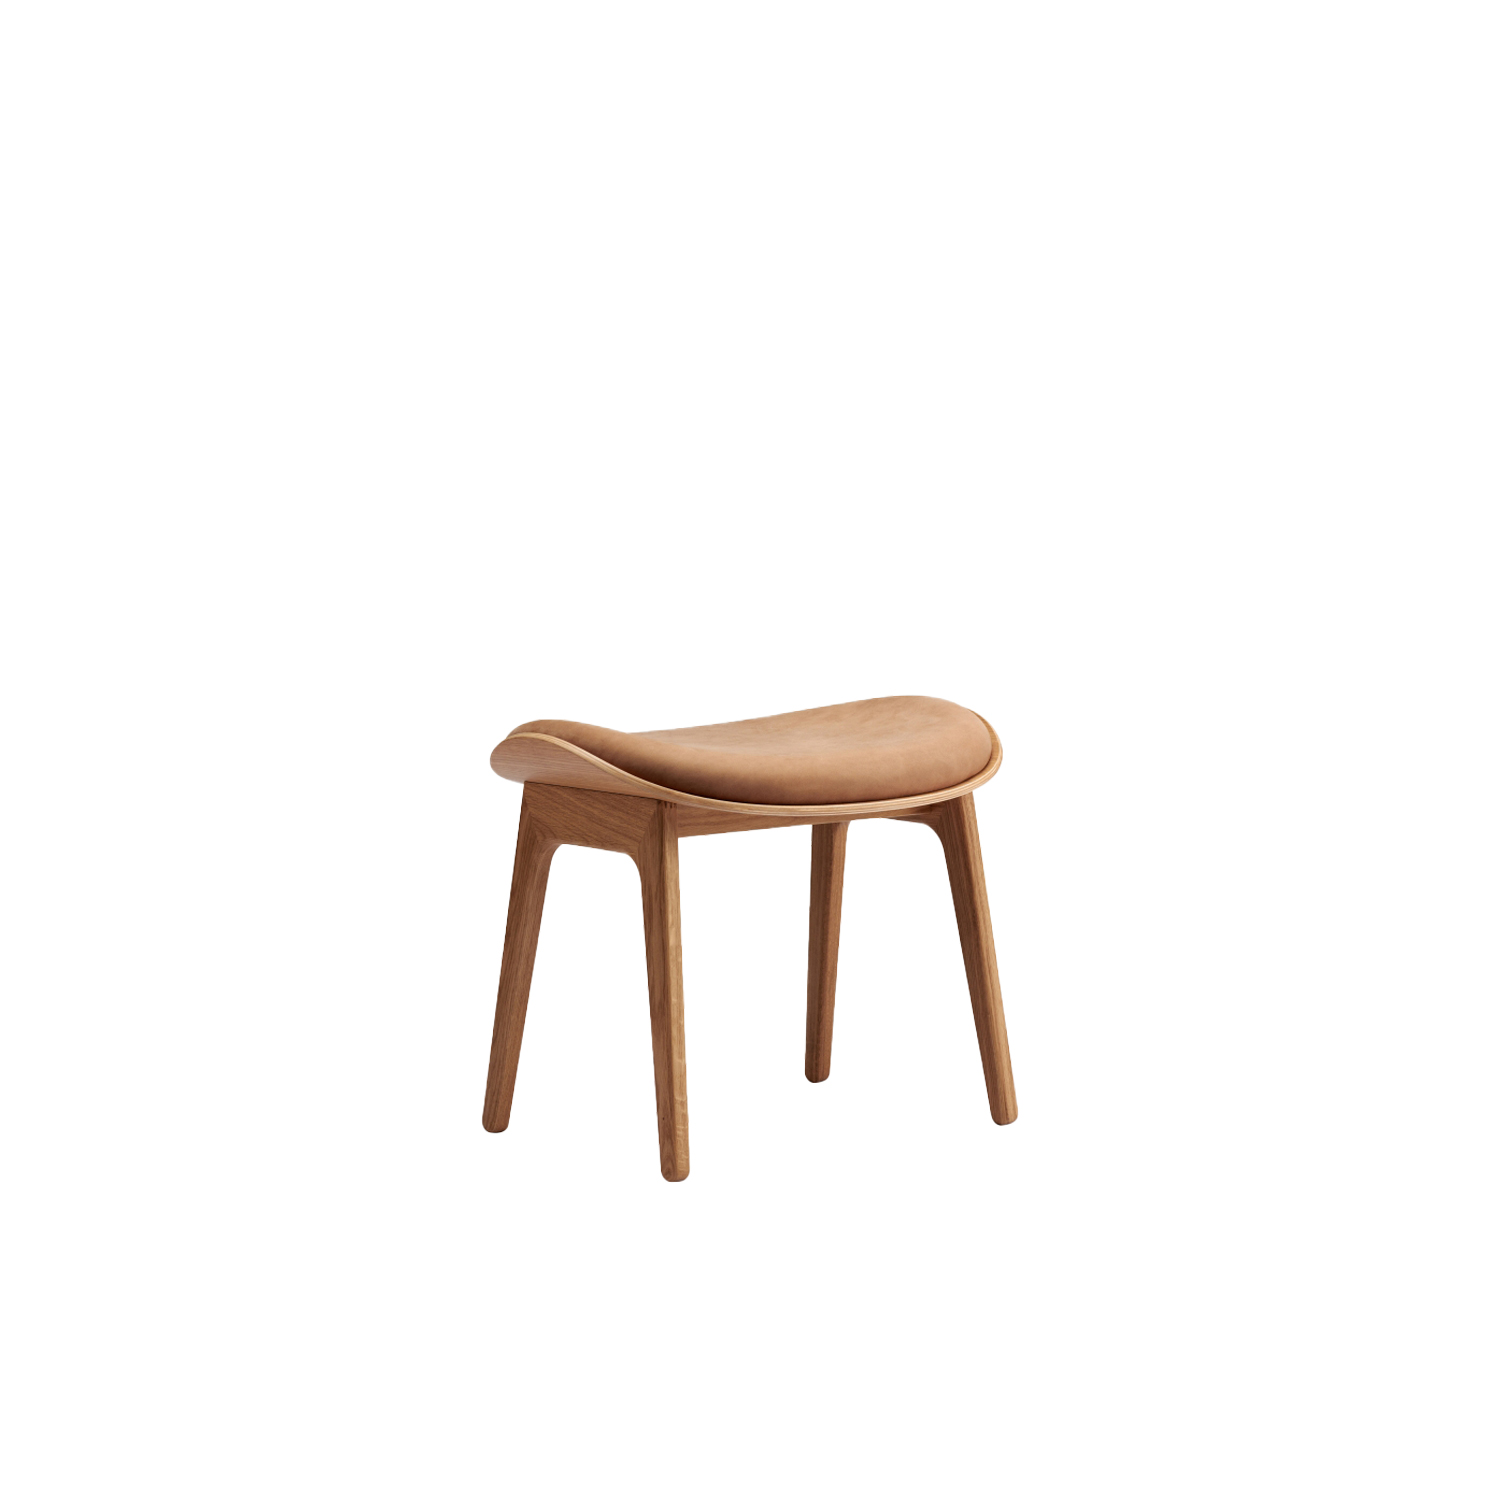 Elephant Lounge Stool Upholstered - Elephant Stool is a minimal piece of furniture, based on the signature aesthetics of the Elephant Chair. The stool suits a wide range of purposes, functioning both as a footrest for the Elephant Chair and as a lounge stool on its own.  Elephant Stool comes with a seat of moulded oak veneer, resting on a wooden base of massive oak. The stool is available without upholstery as well as with different upholstery options. | Matter of Stuff